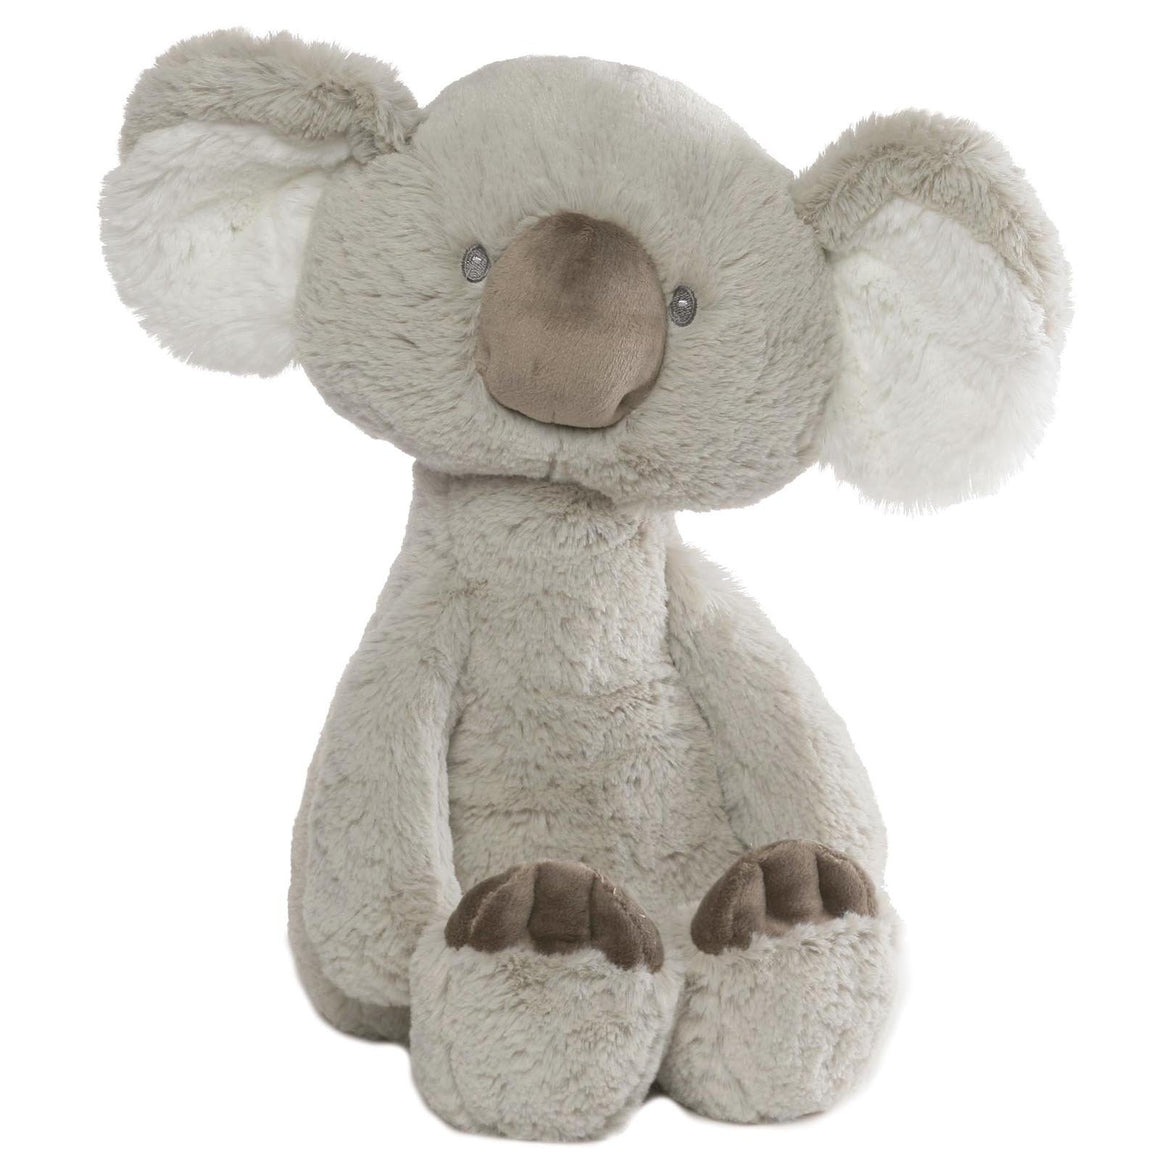 Toothpick Koala Large Soft Toy - GUND Baby